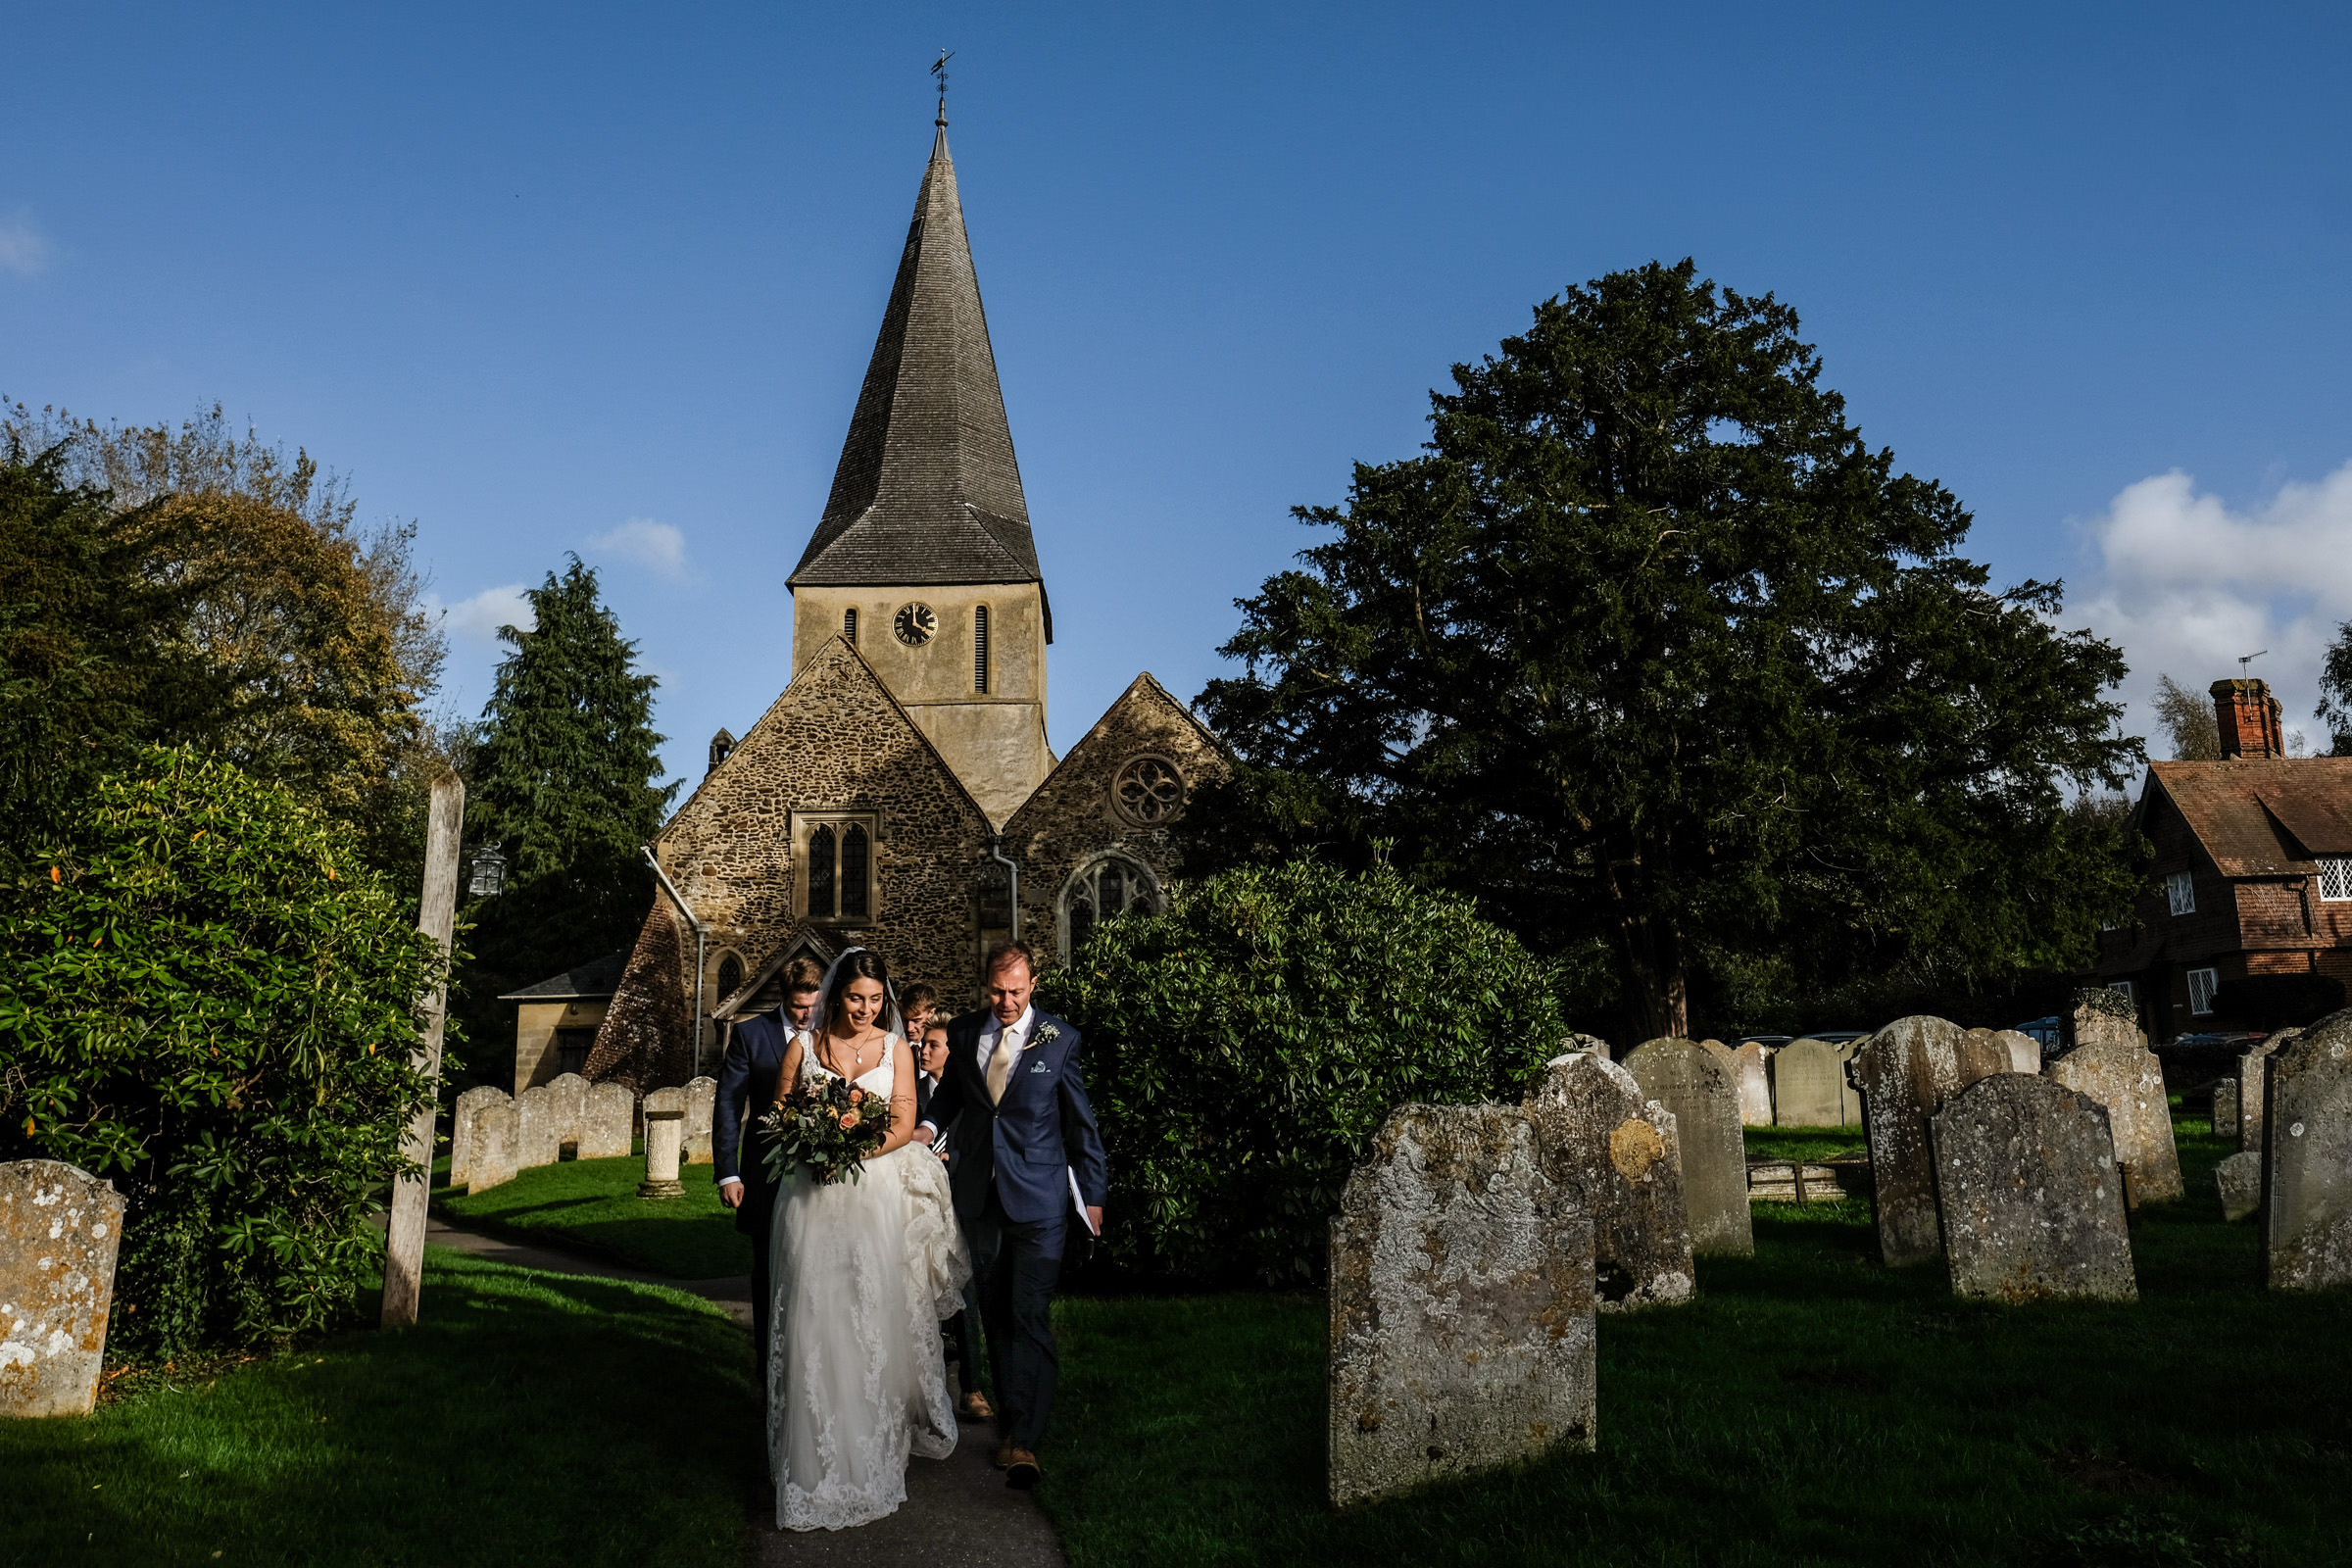 Talbot+Inn+Wedding+Photos+Surrey+023.jpg